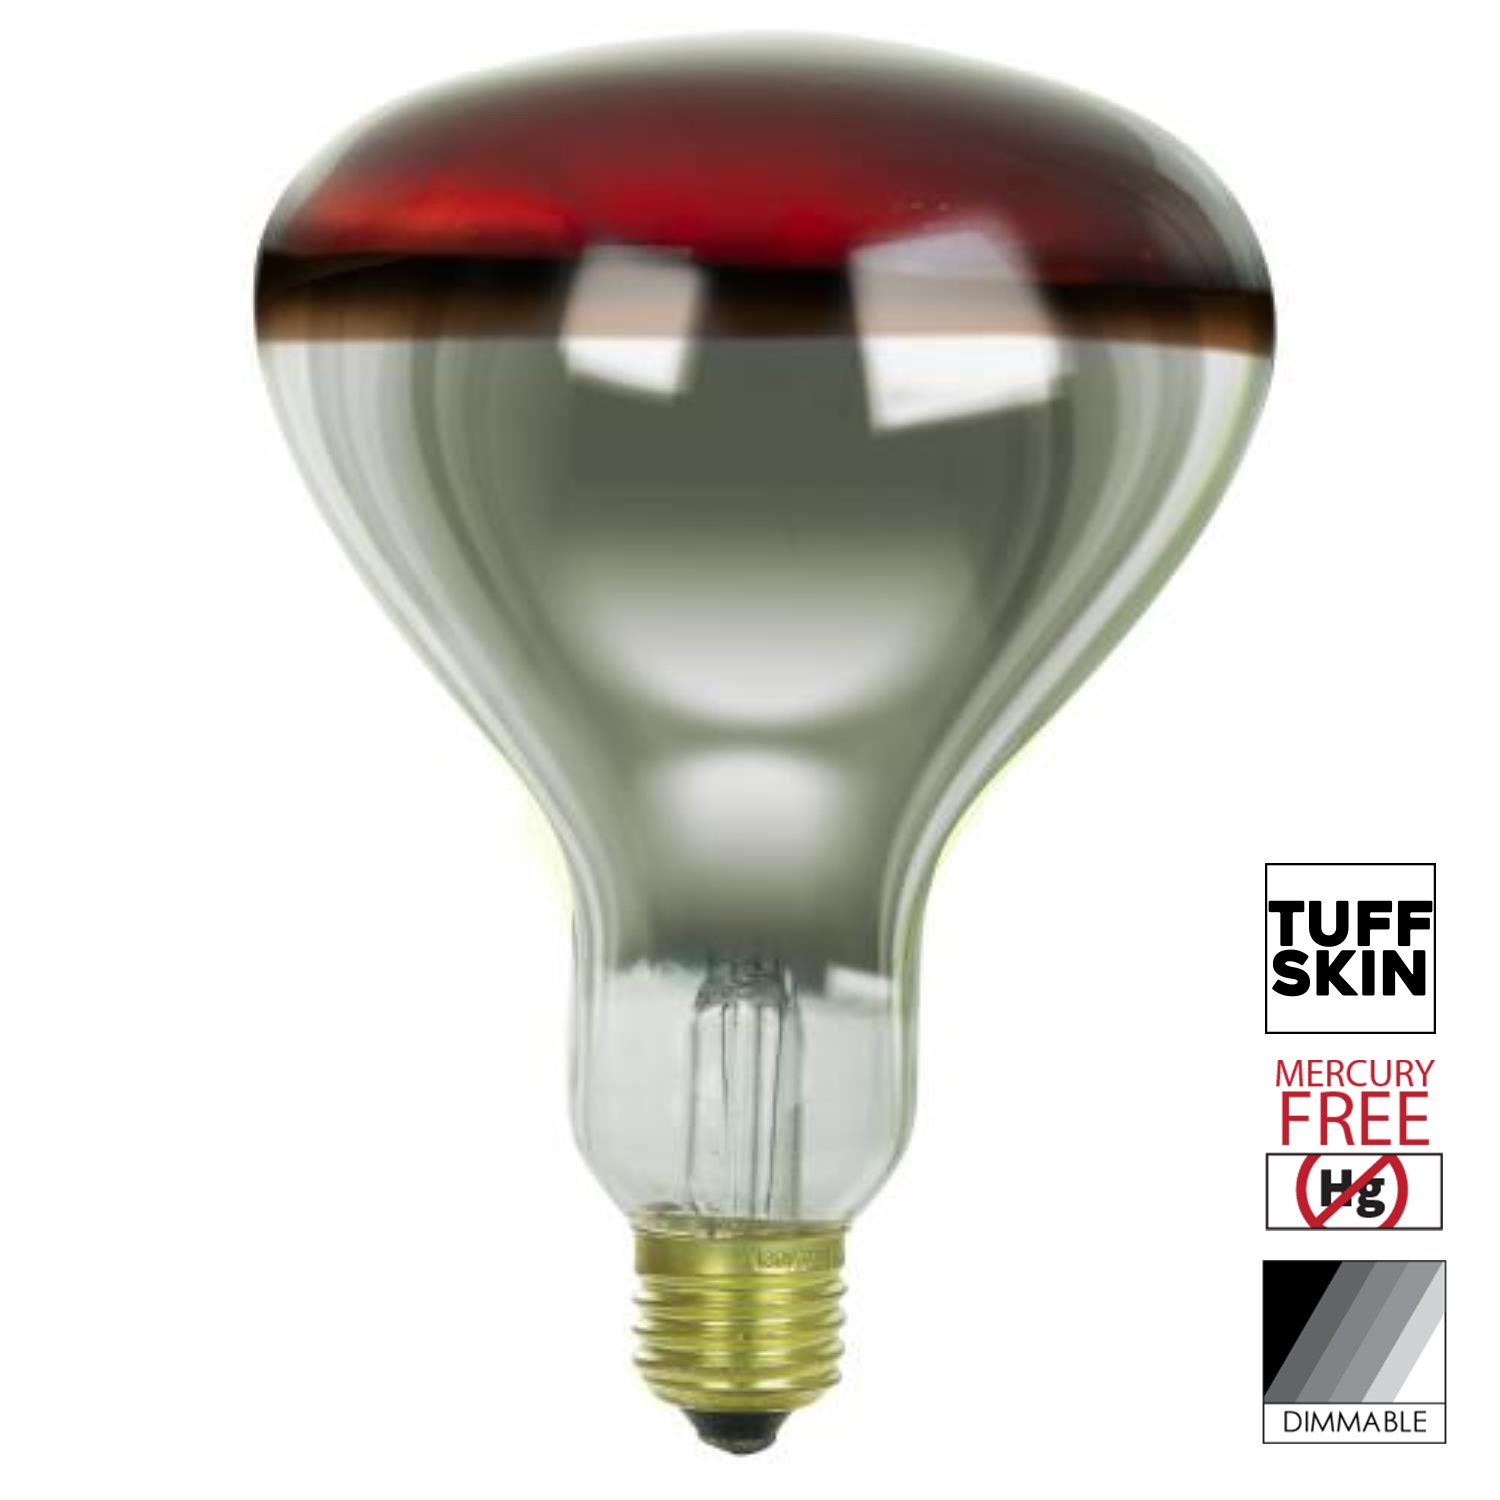 Sunlite 250 Watt R40 Incandescent Heat Lamp Bulb, Medium Base, Red, Dimmable, with Tuff Skin Shatter Resistant Coating